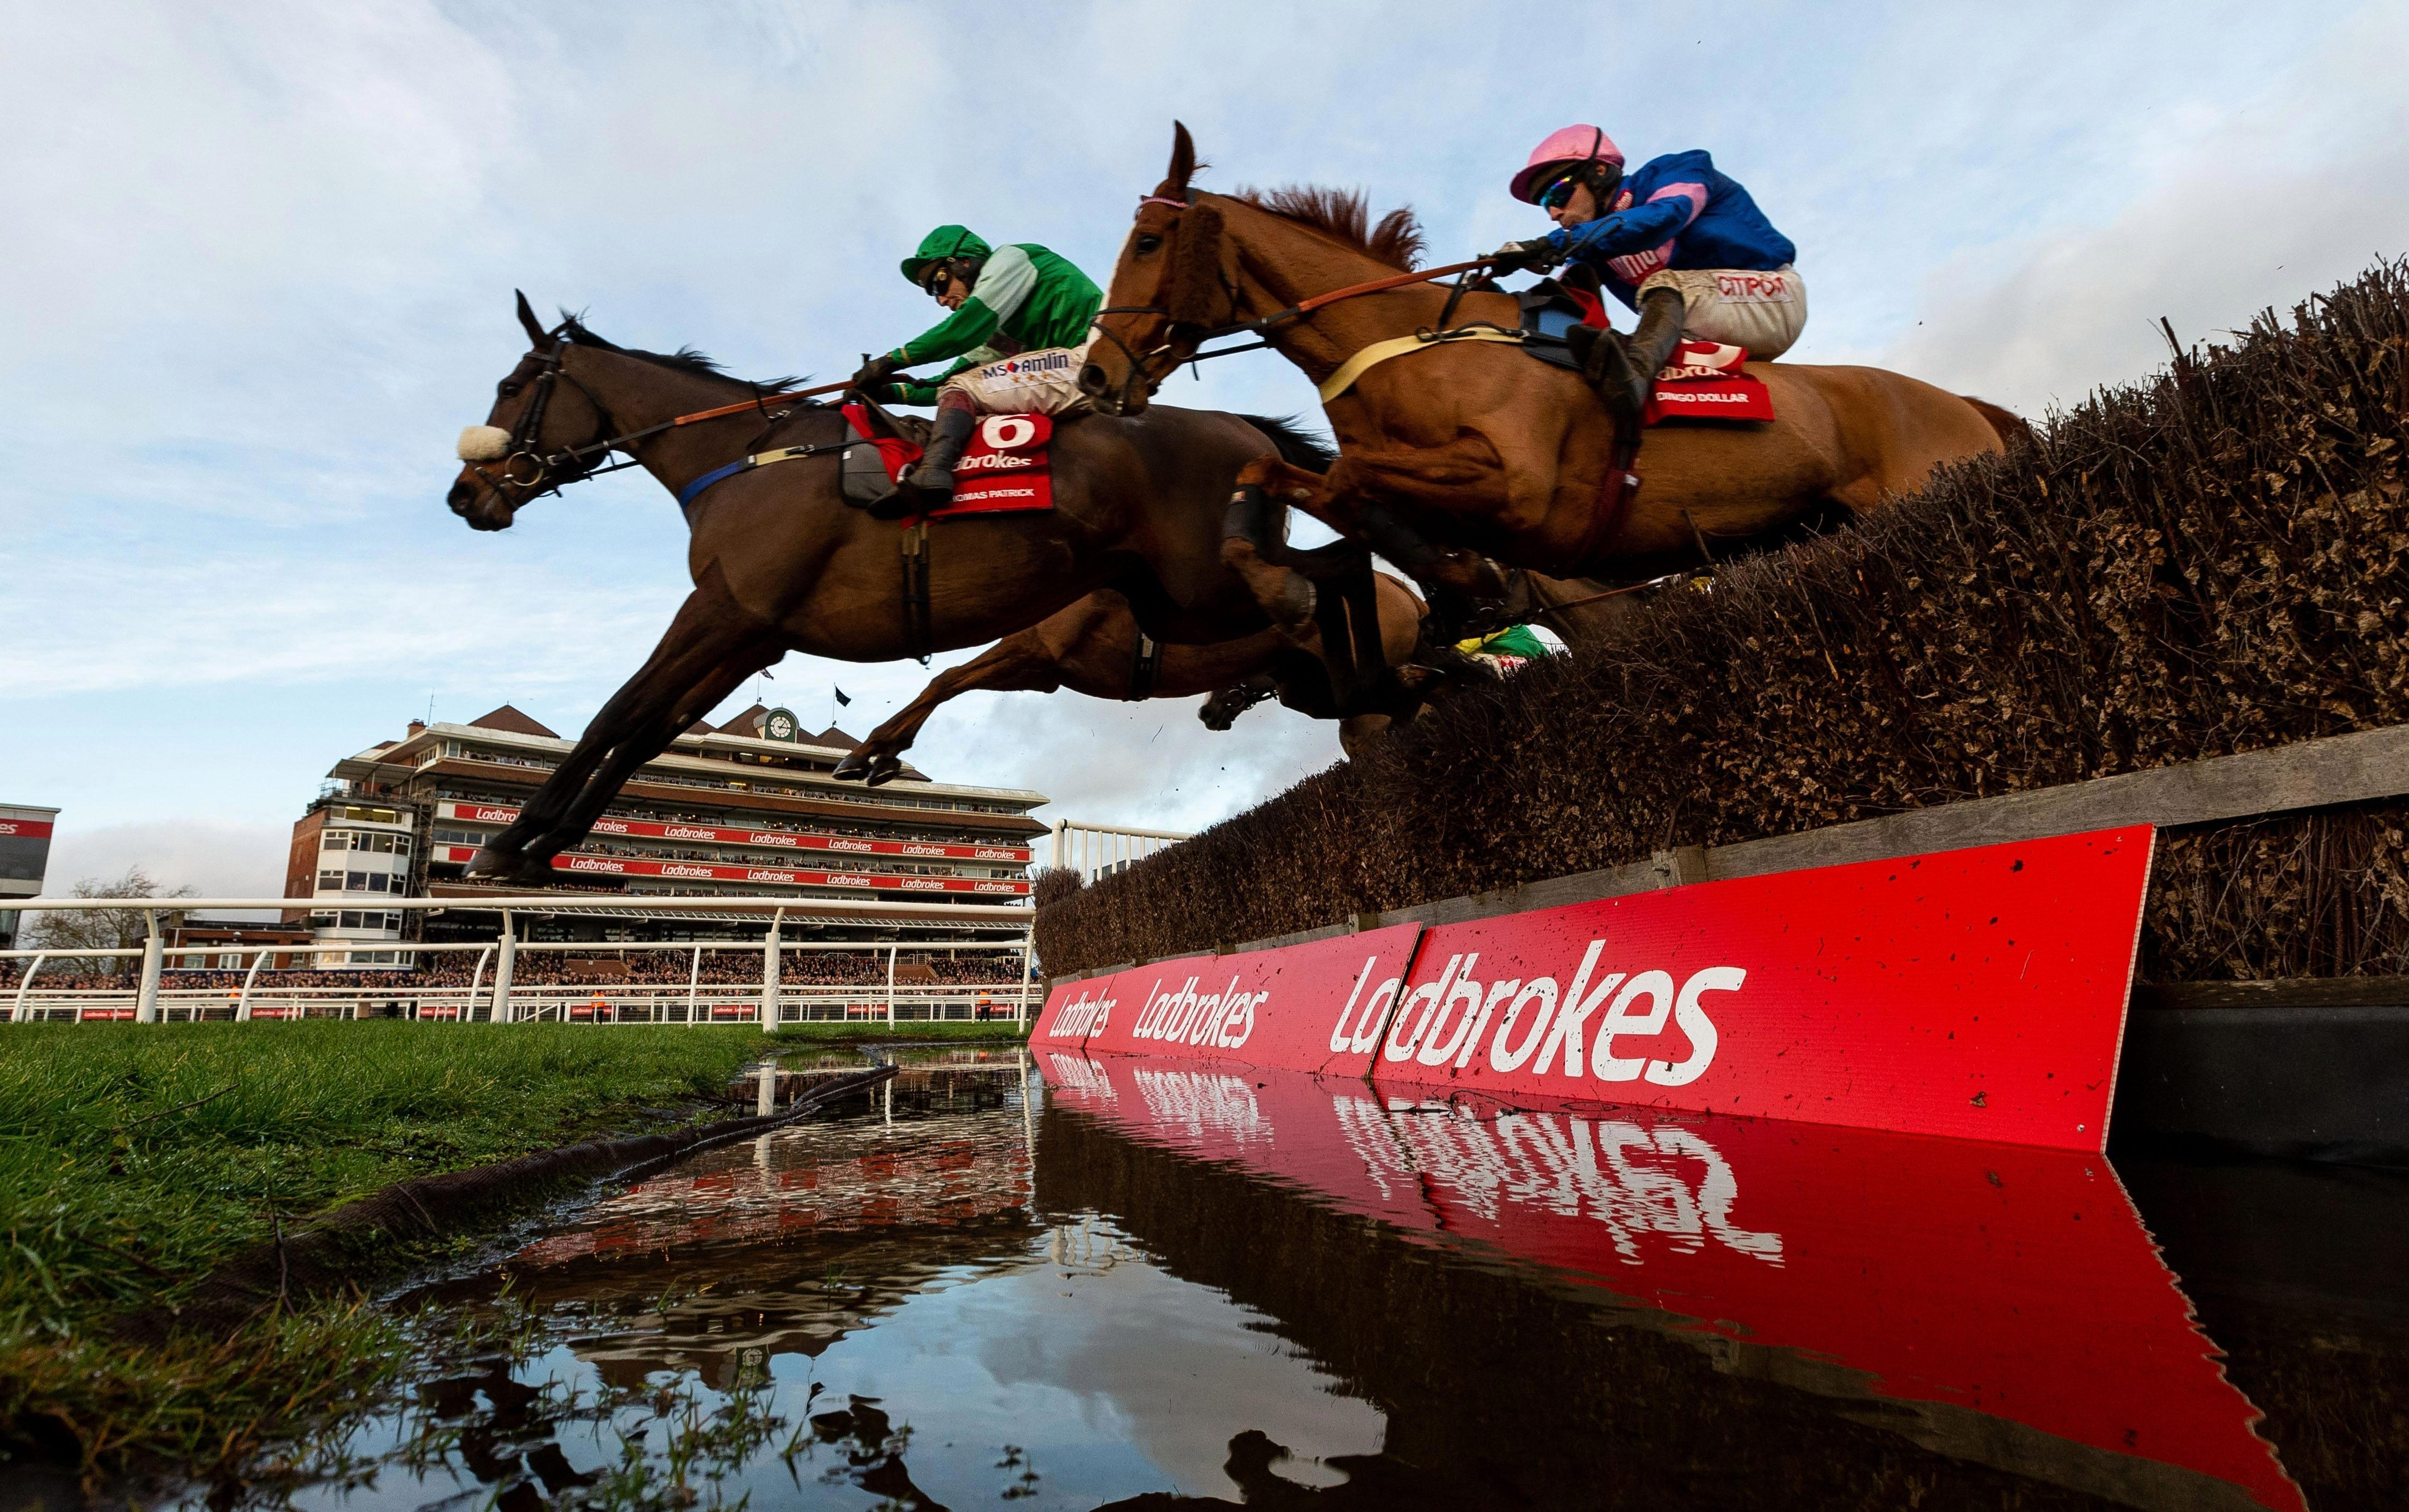 Wednesday's racing tips: Wednesday longshots to fill your pockets at Newbury and Lingfield from Jack Keene